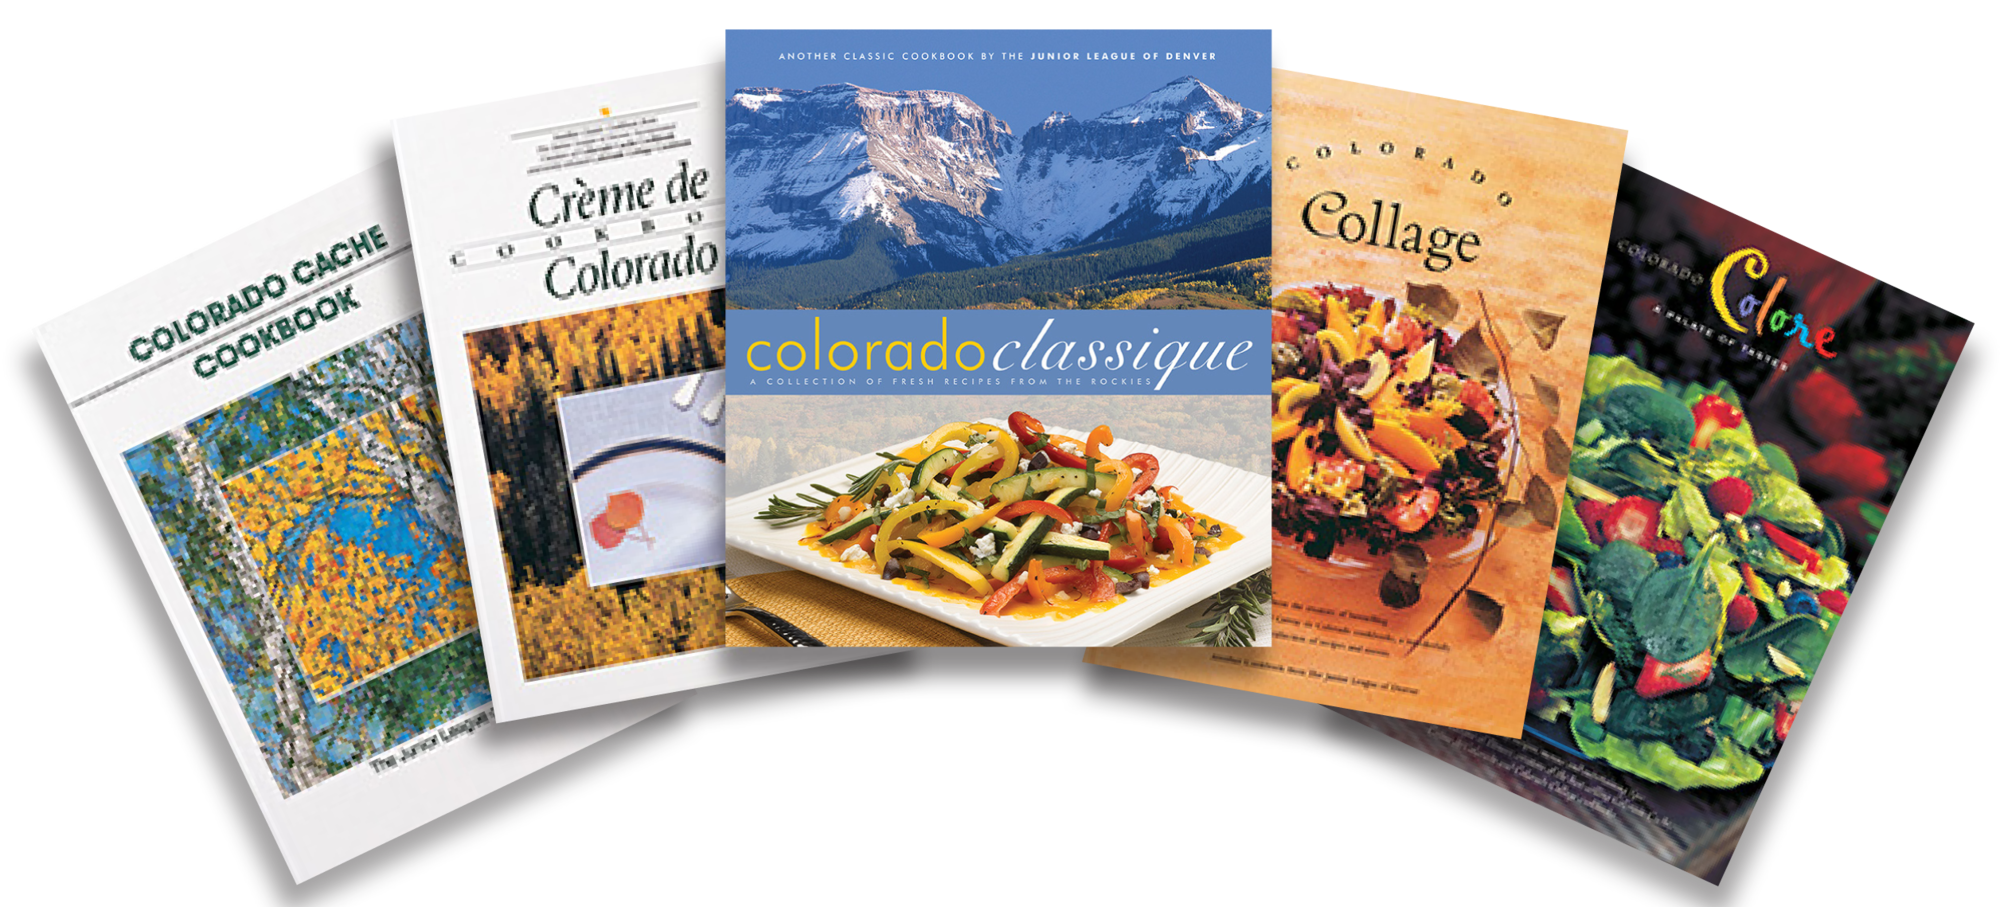 cookbook-graphics-centered